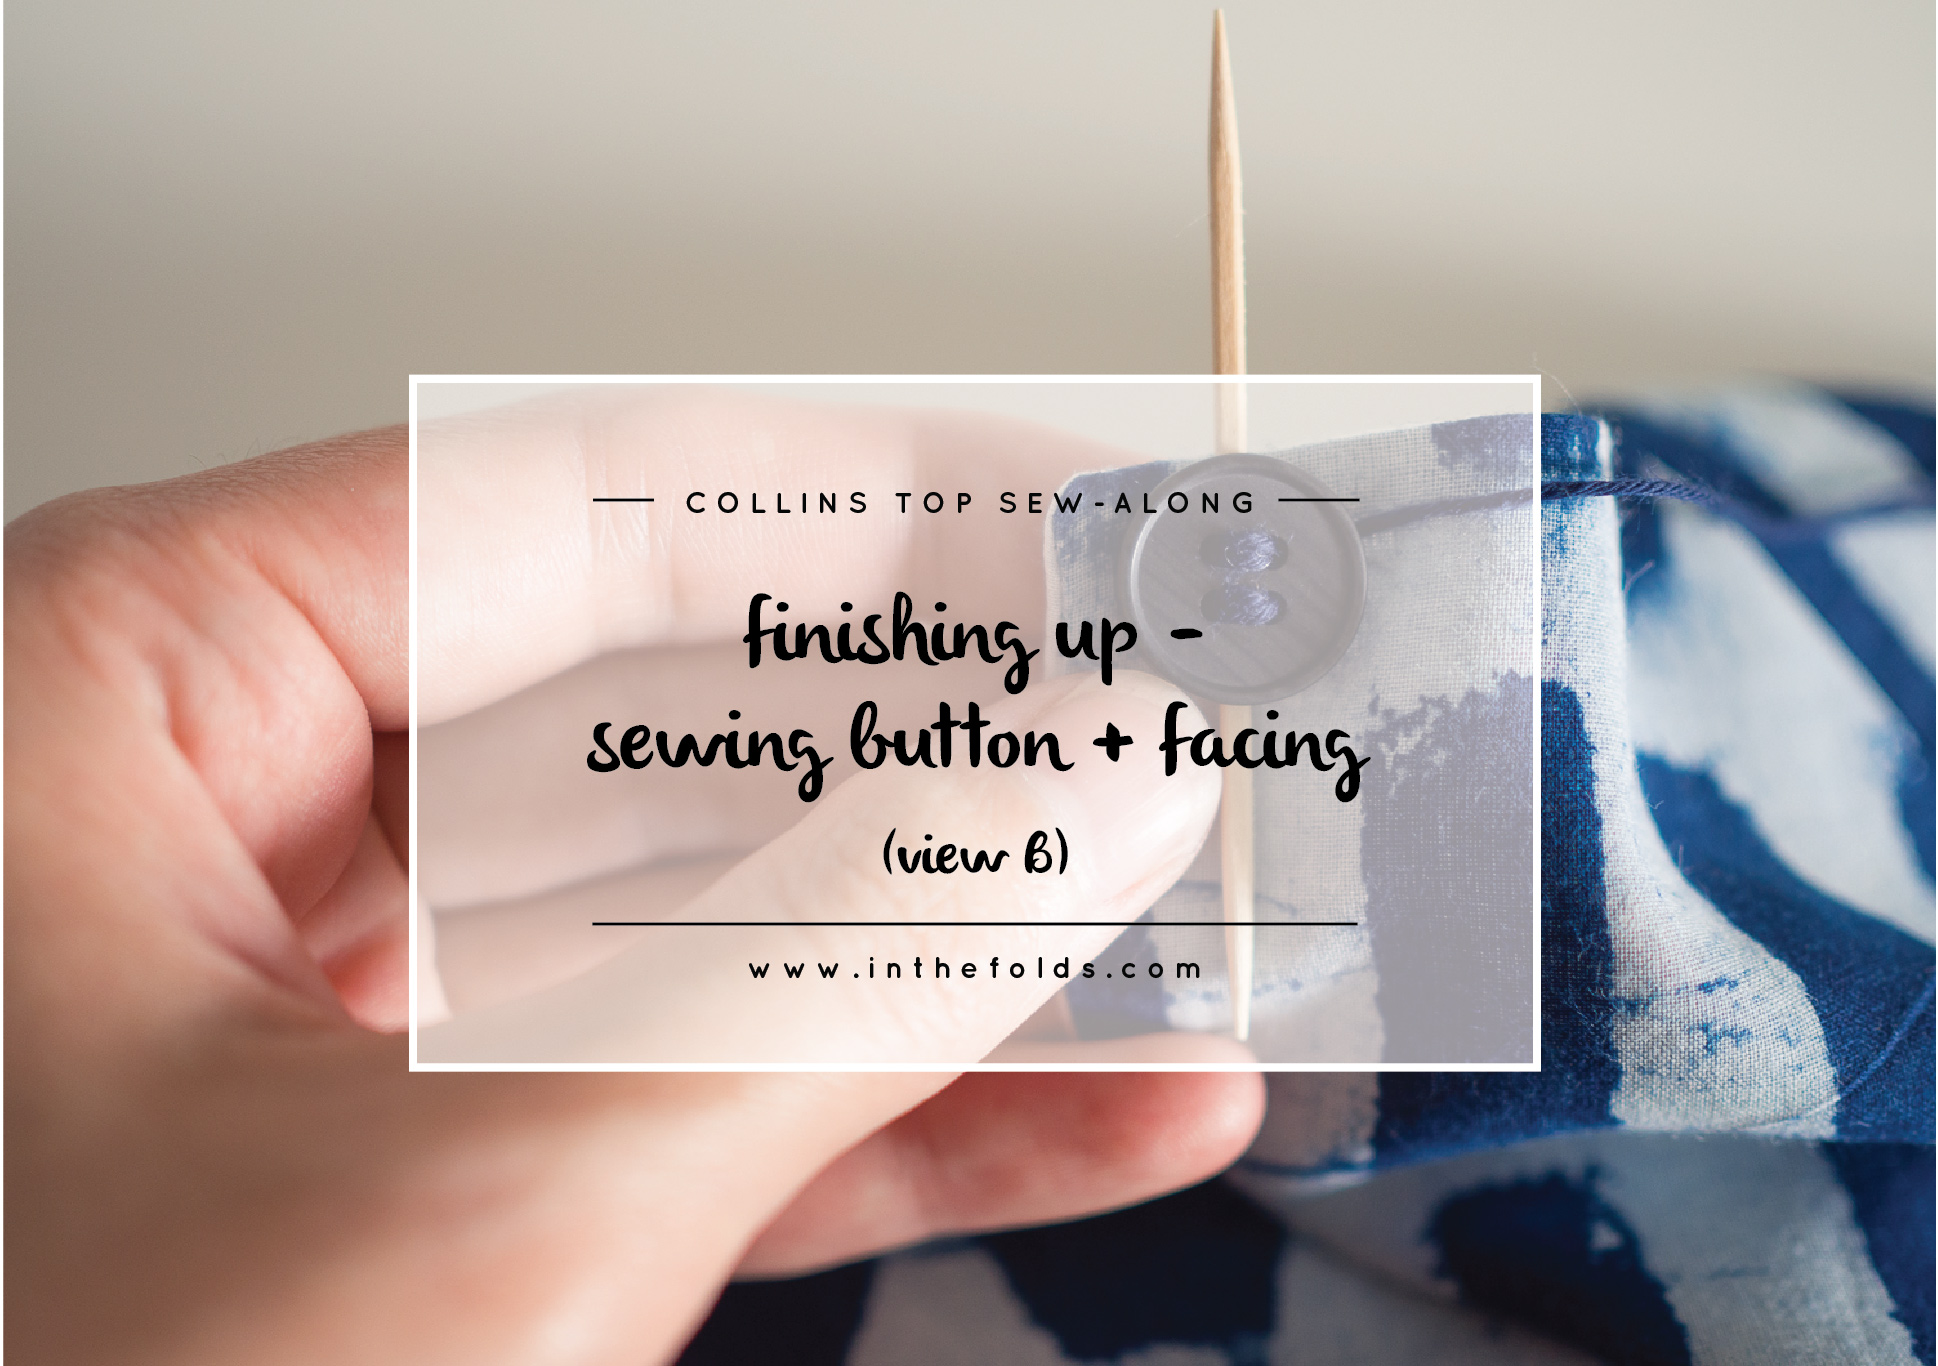 collins_sewing_button_1